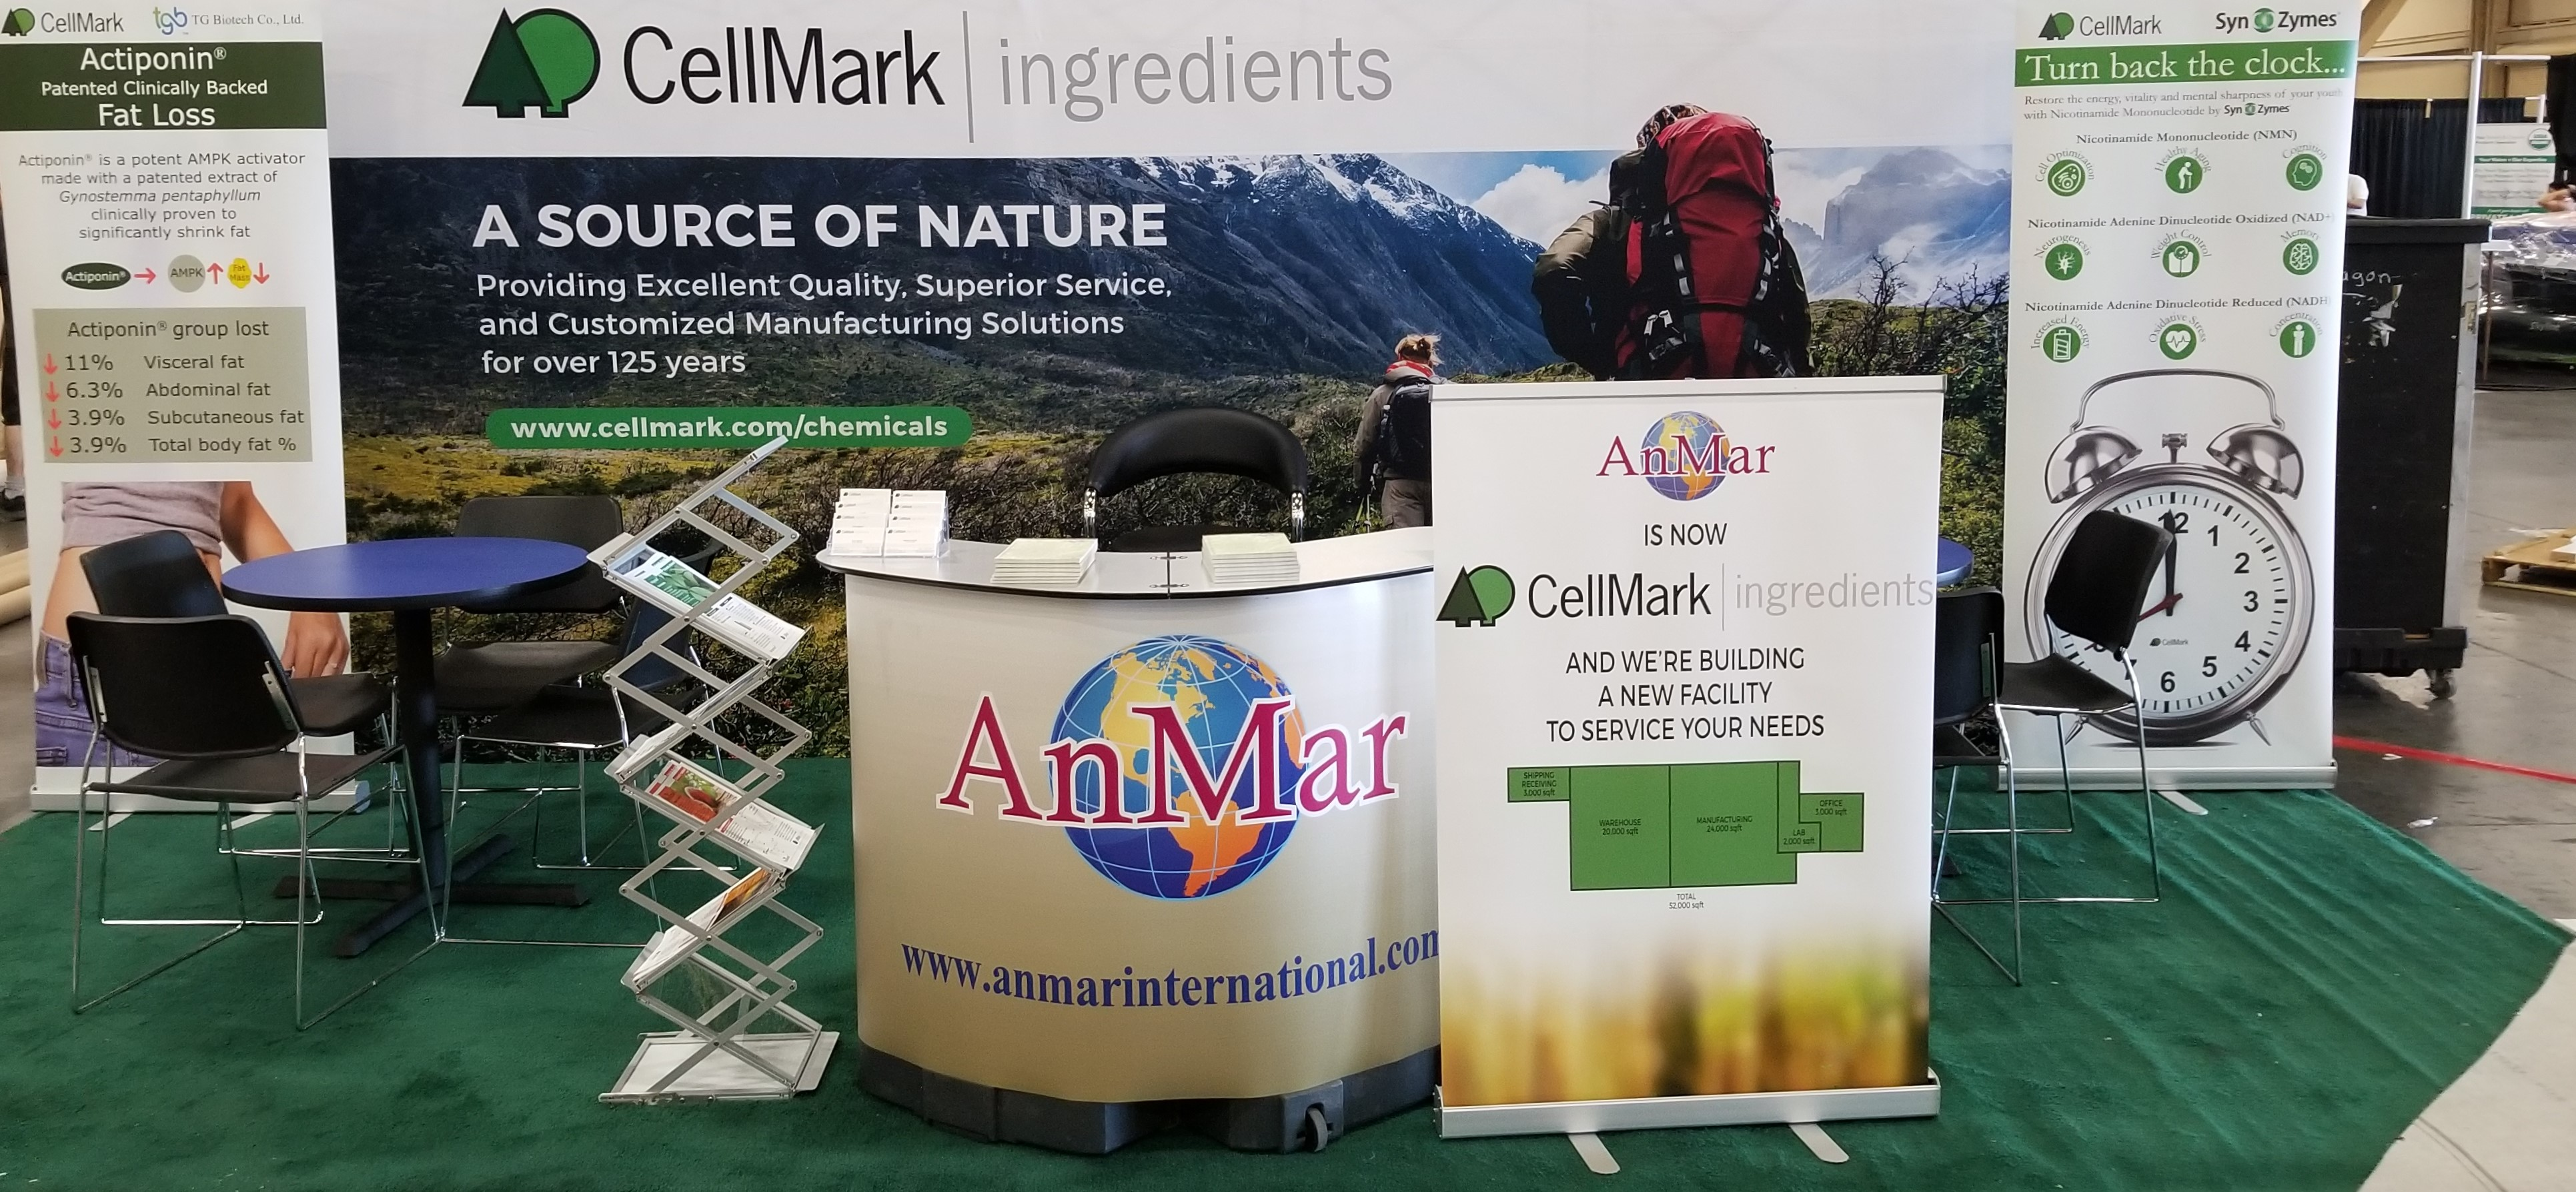 cellmark ingredients tradeshow booth